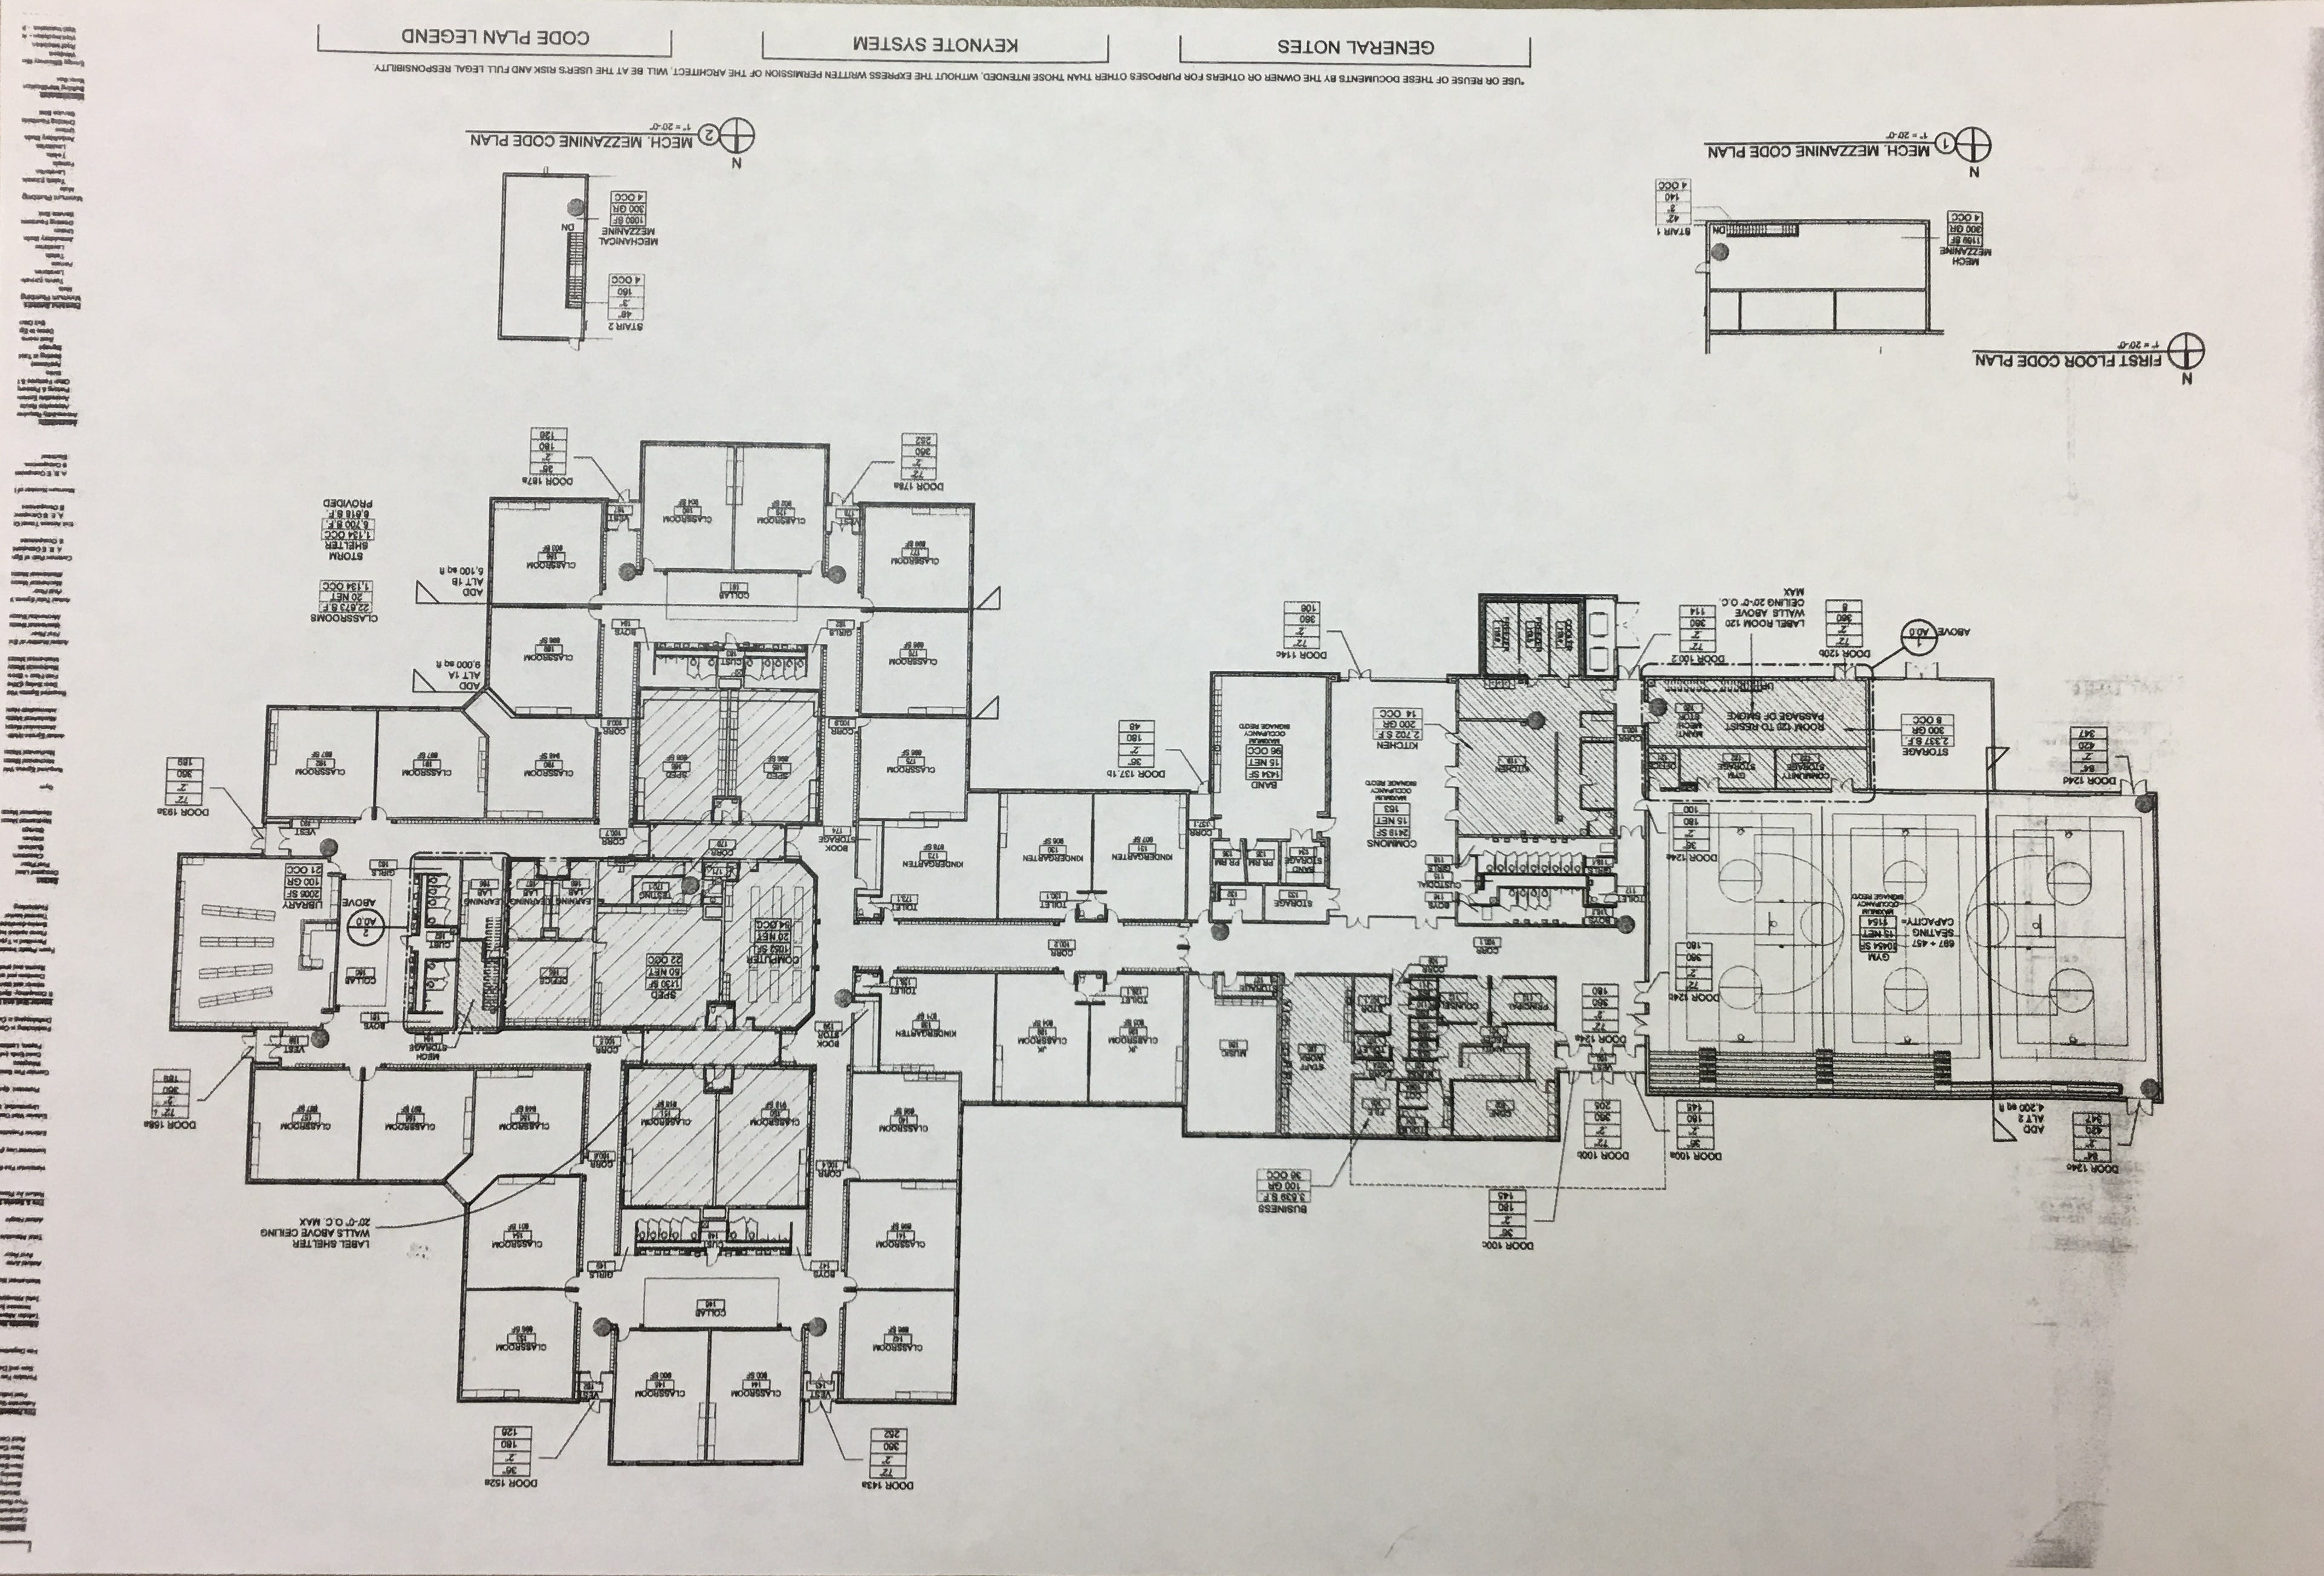 A schematic for Tea Area School District's newest elementary is shown. Venture Elementary is expected to open this fall.